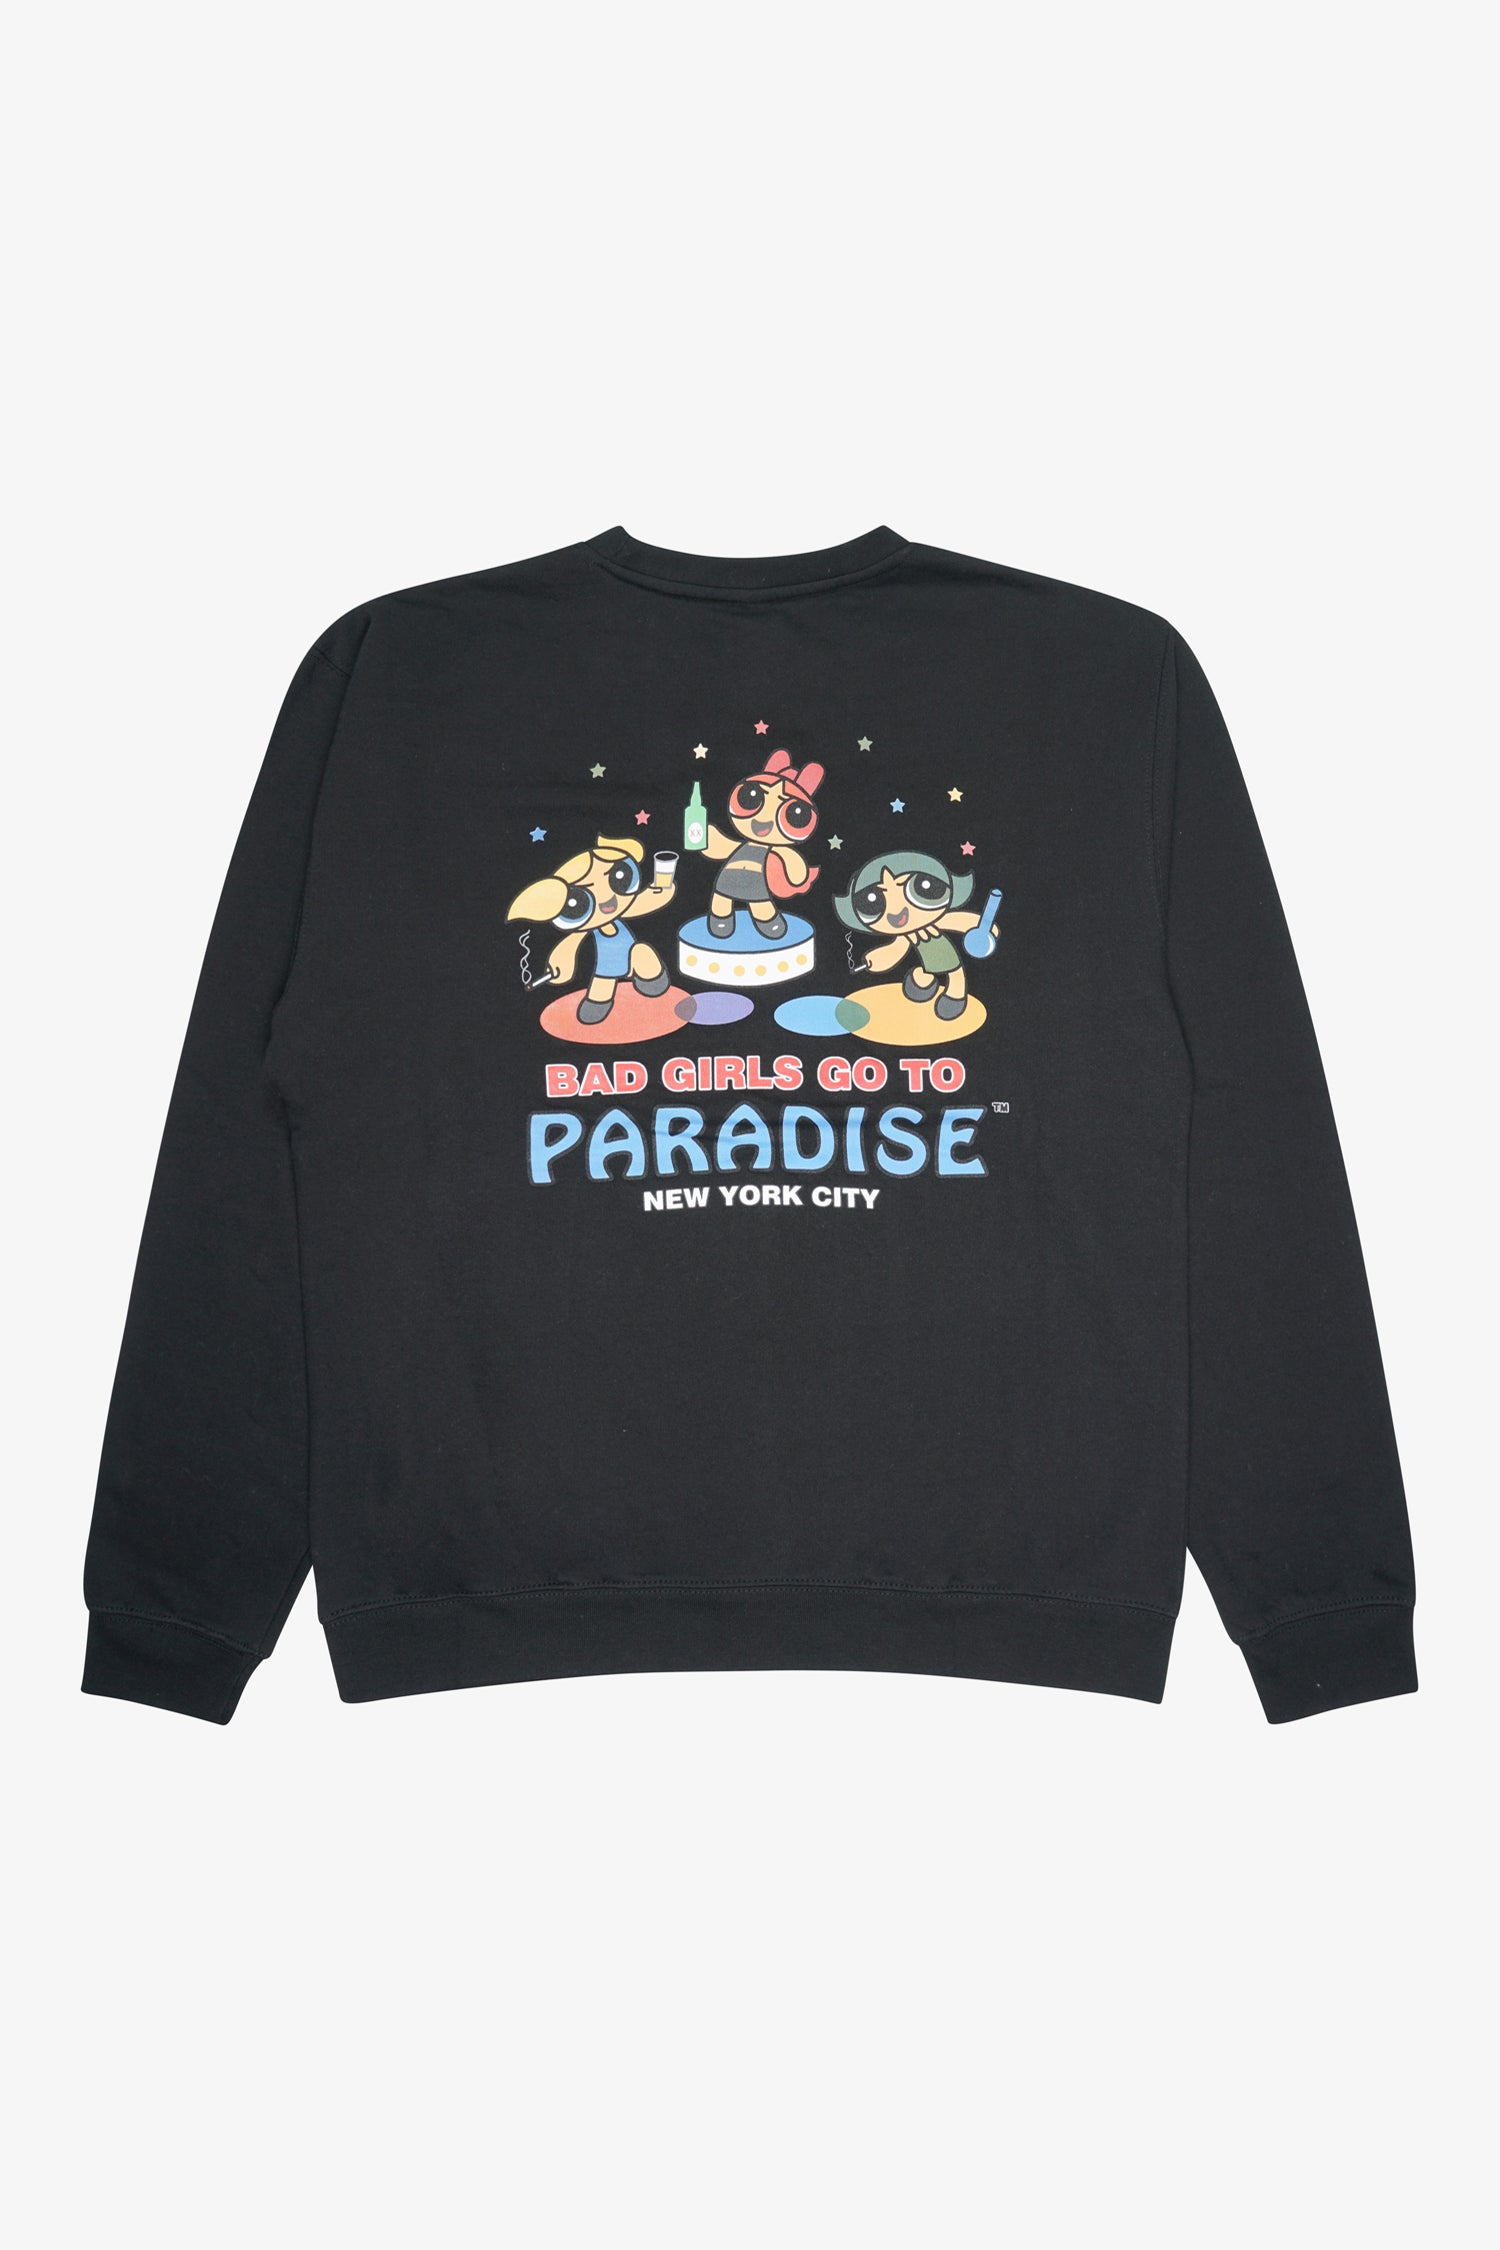 Selectshop FRAME - PARADIS3 Bad Girls Crewneck Sweats-Knits Dubai